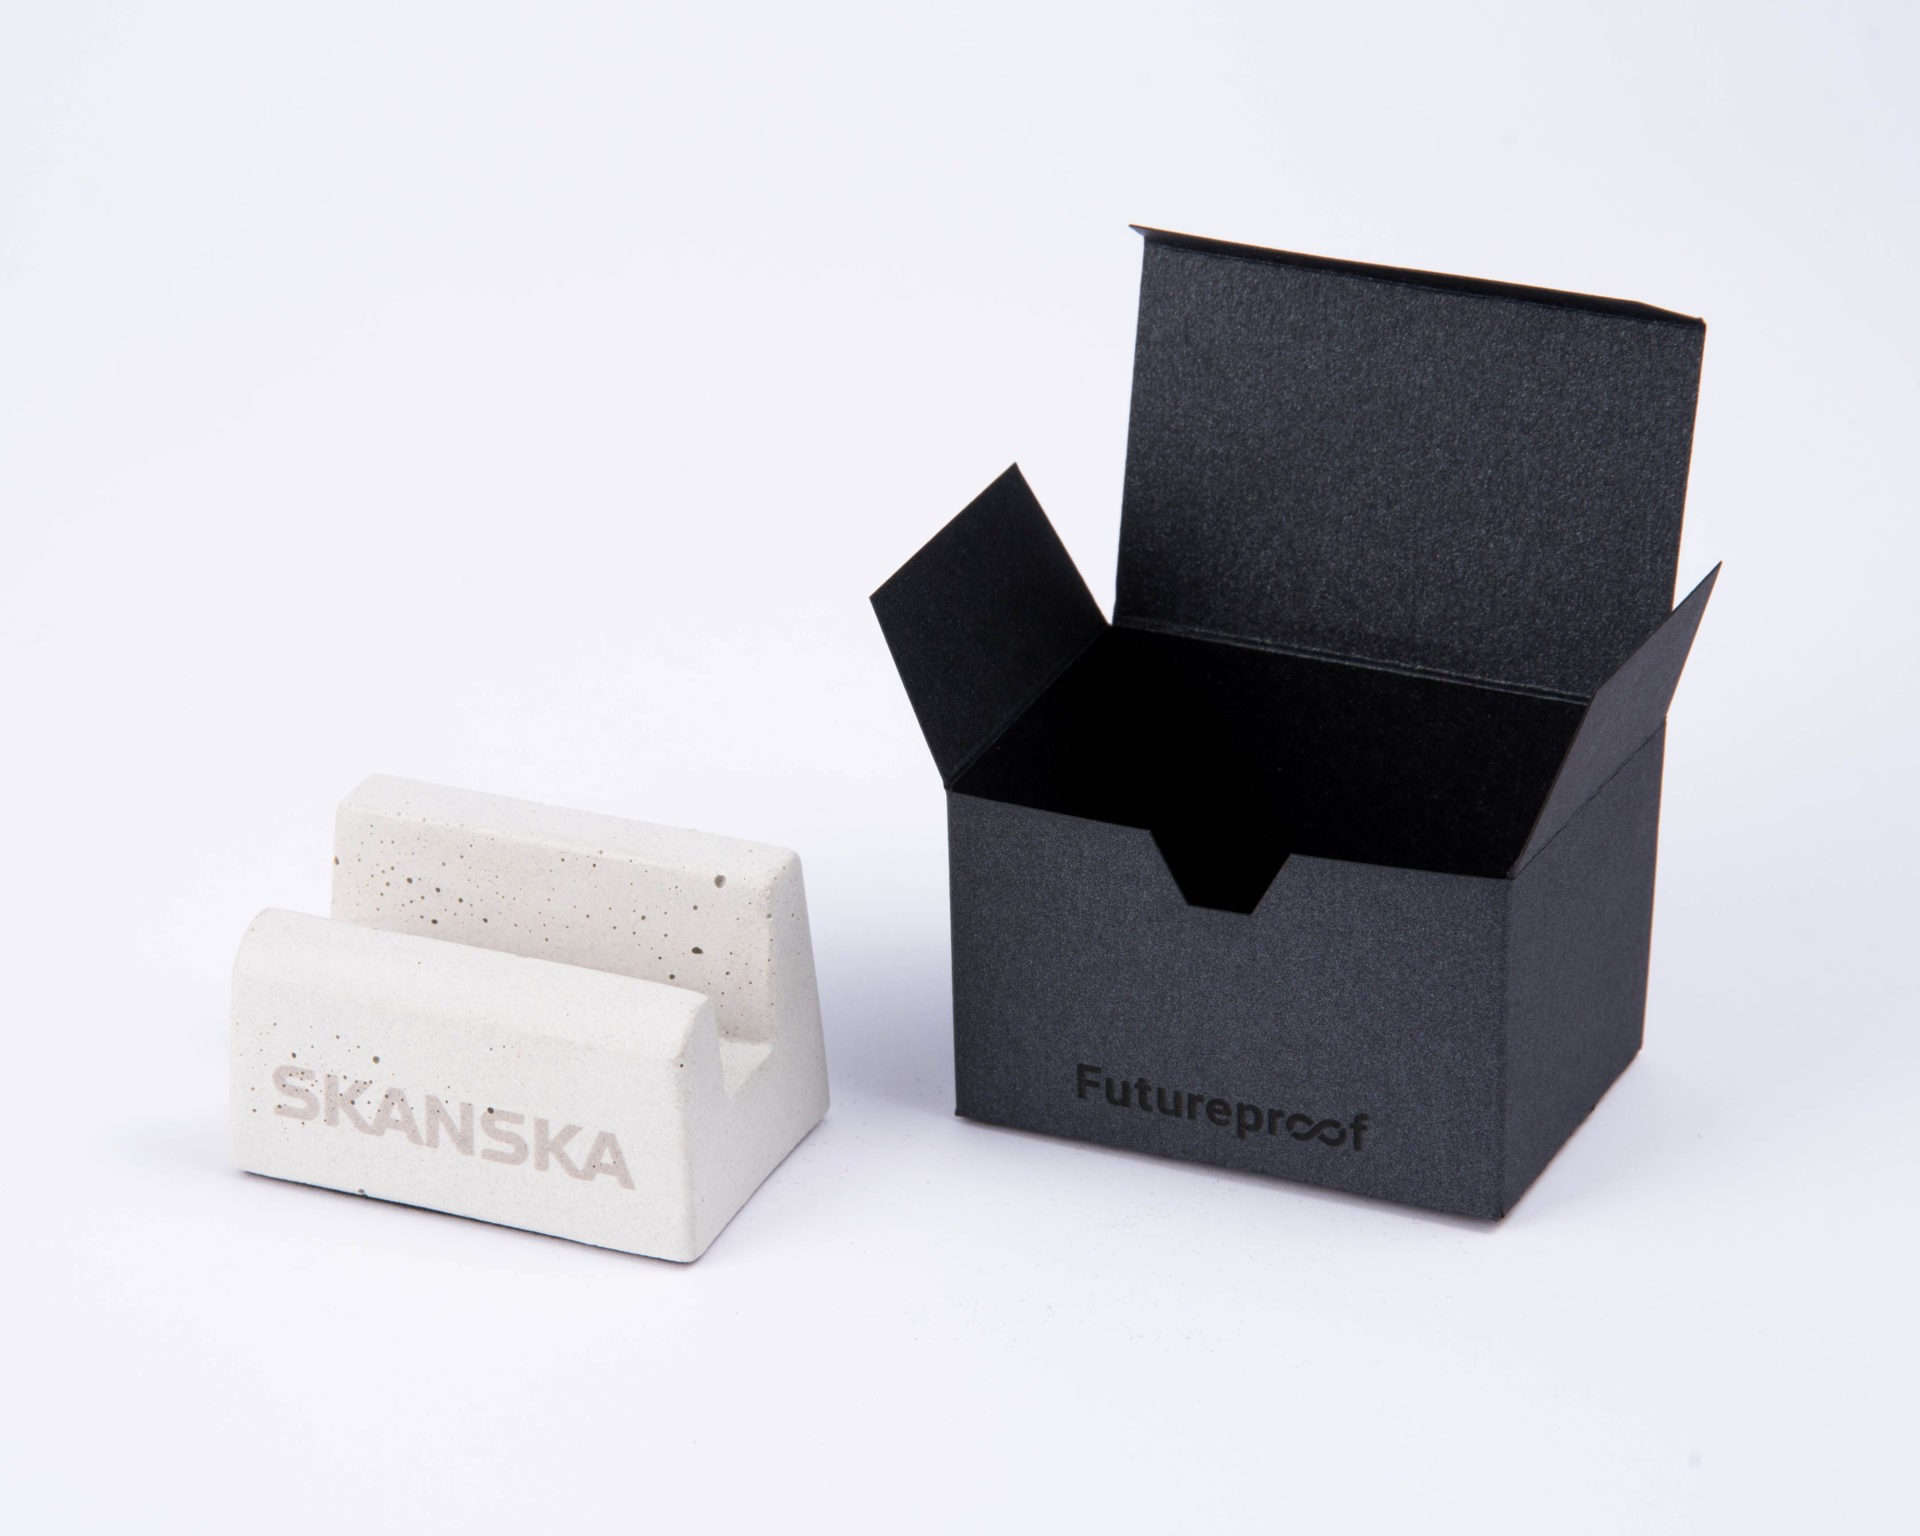 Branded business card holder as corporate gift for Skanska